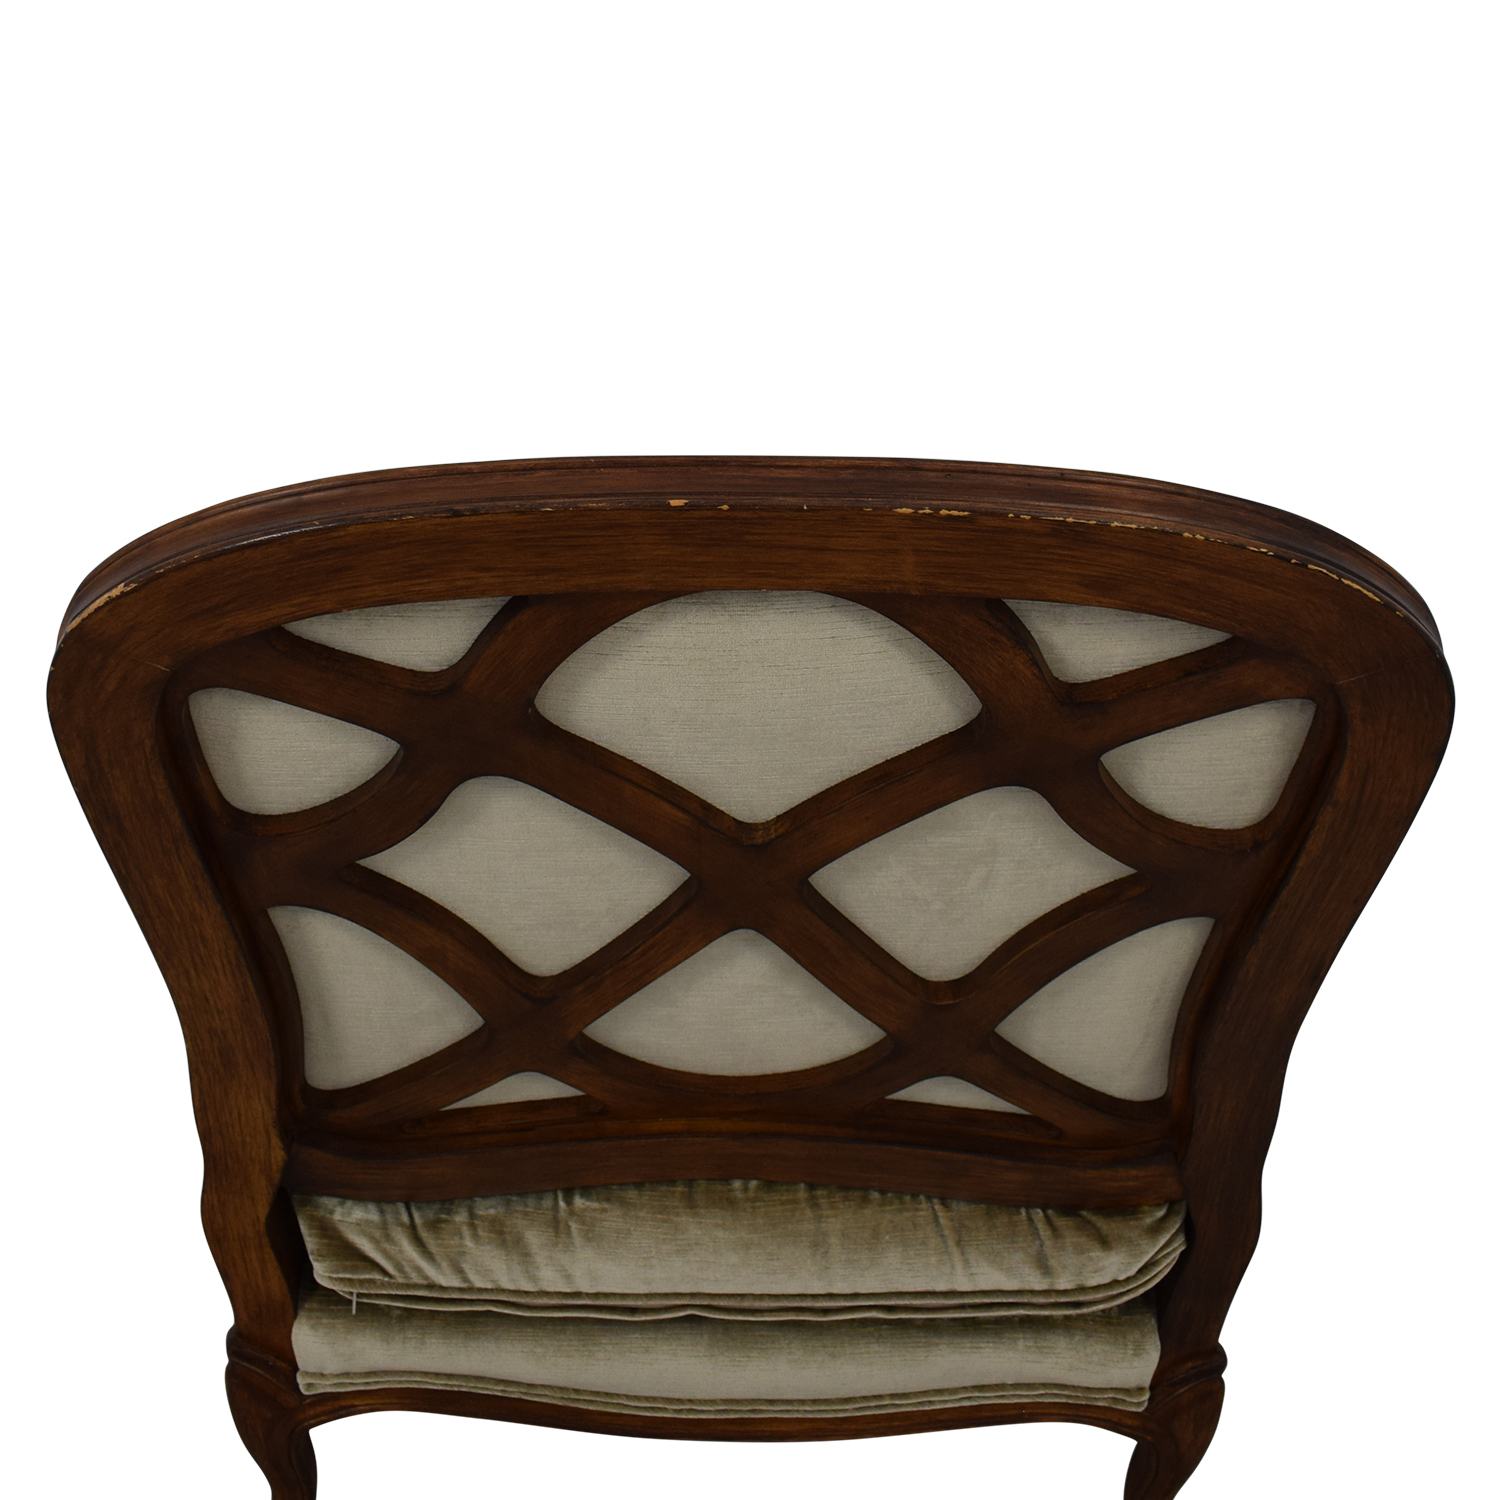 Drexel Heritage Drexel Heritage Country French Accent Chair price